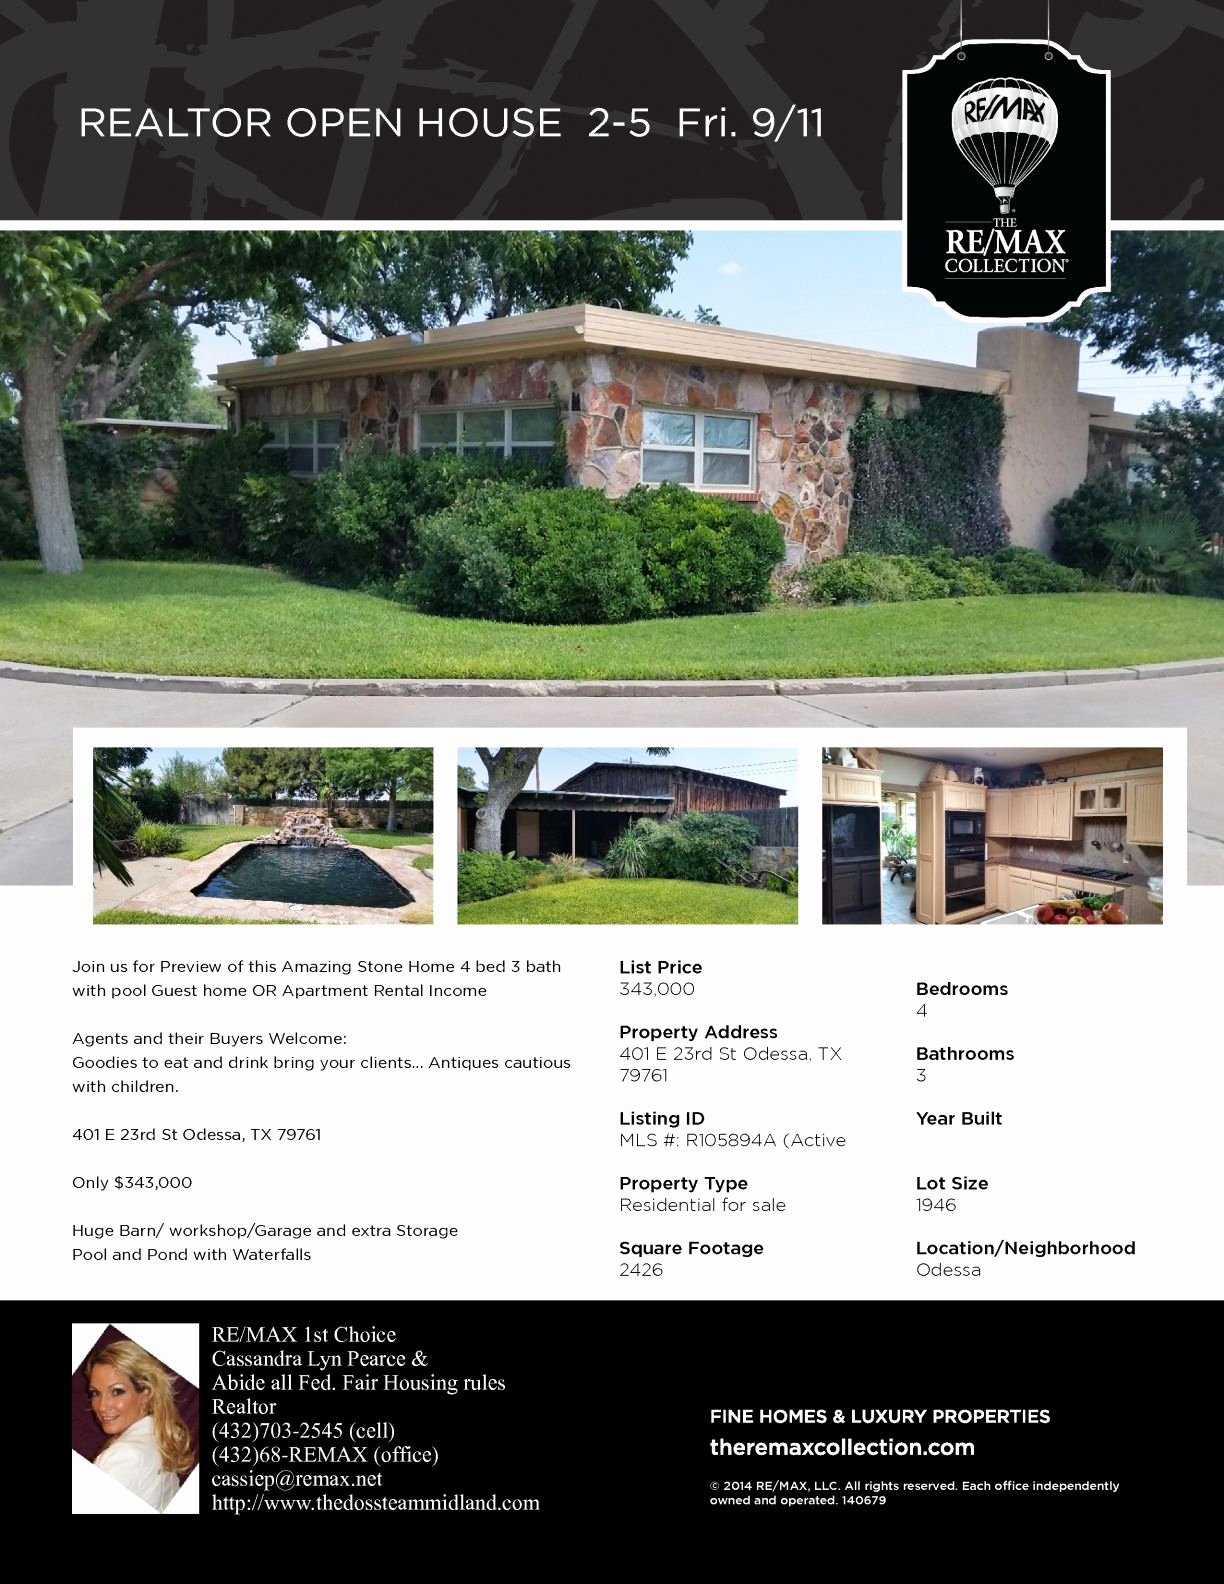 Home for Sale Flyer Luxury Realtor Open House Flyer